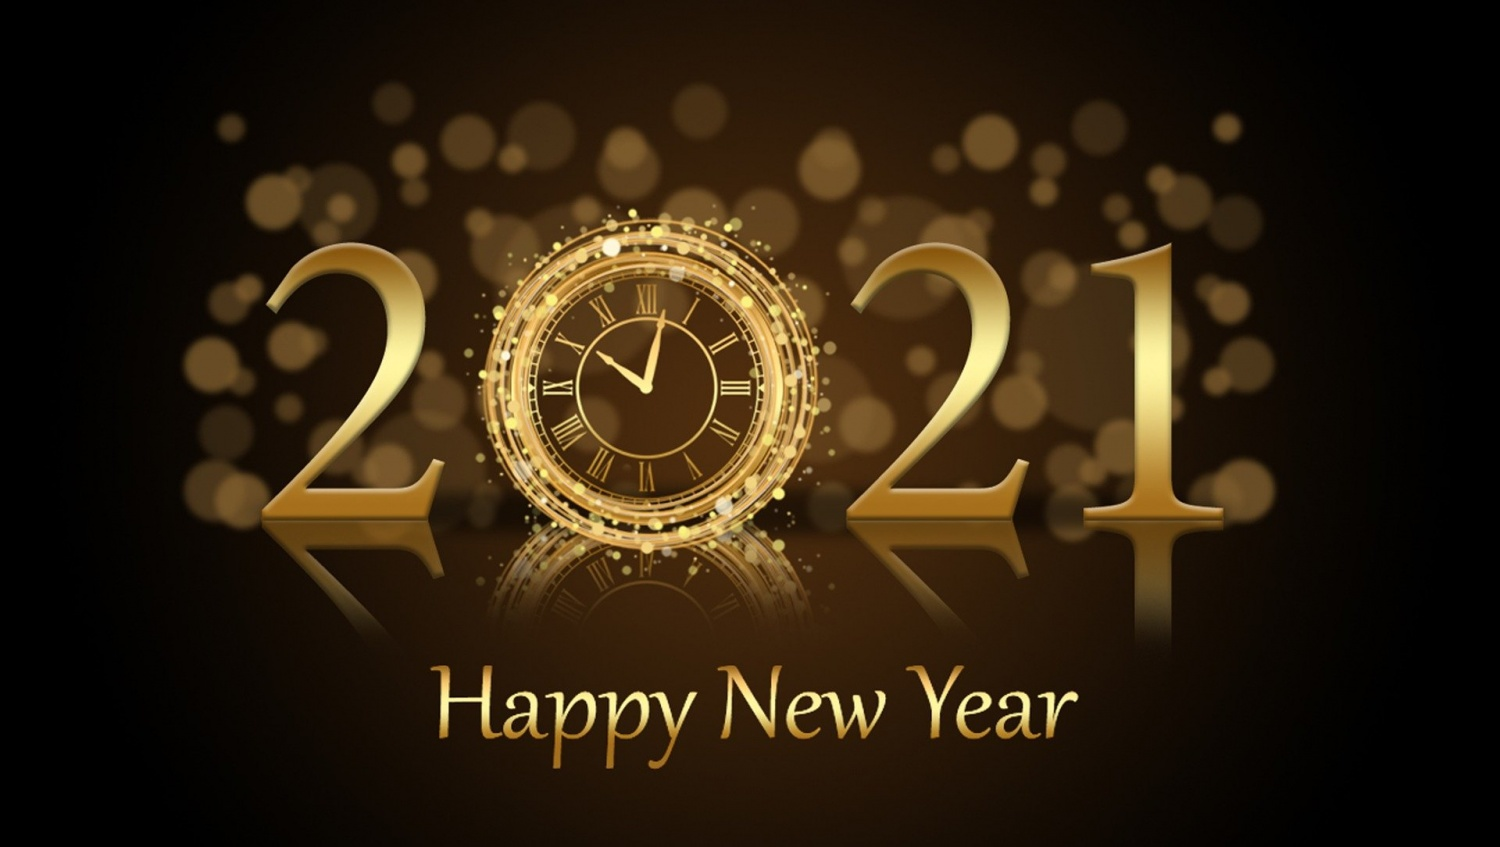 Best 'Happy New Year 2021' Images, Wallpapers, GIFs, Memes ...